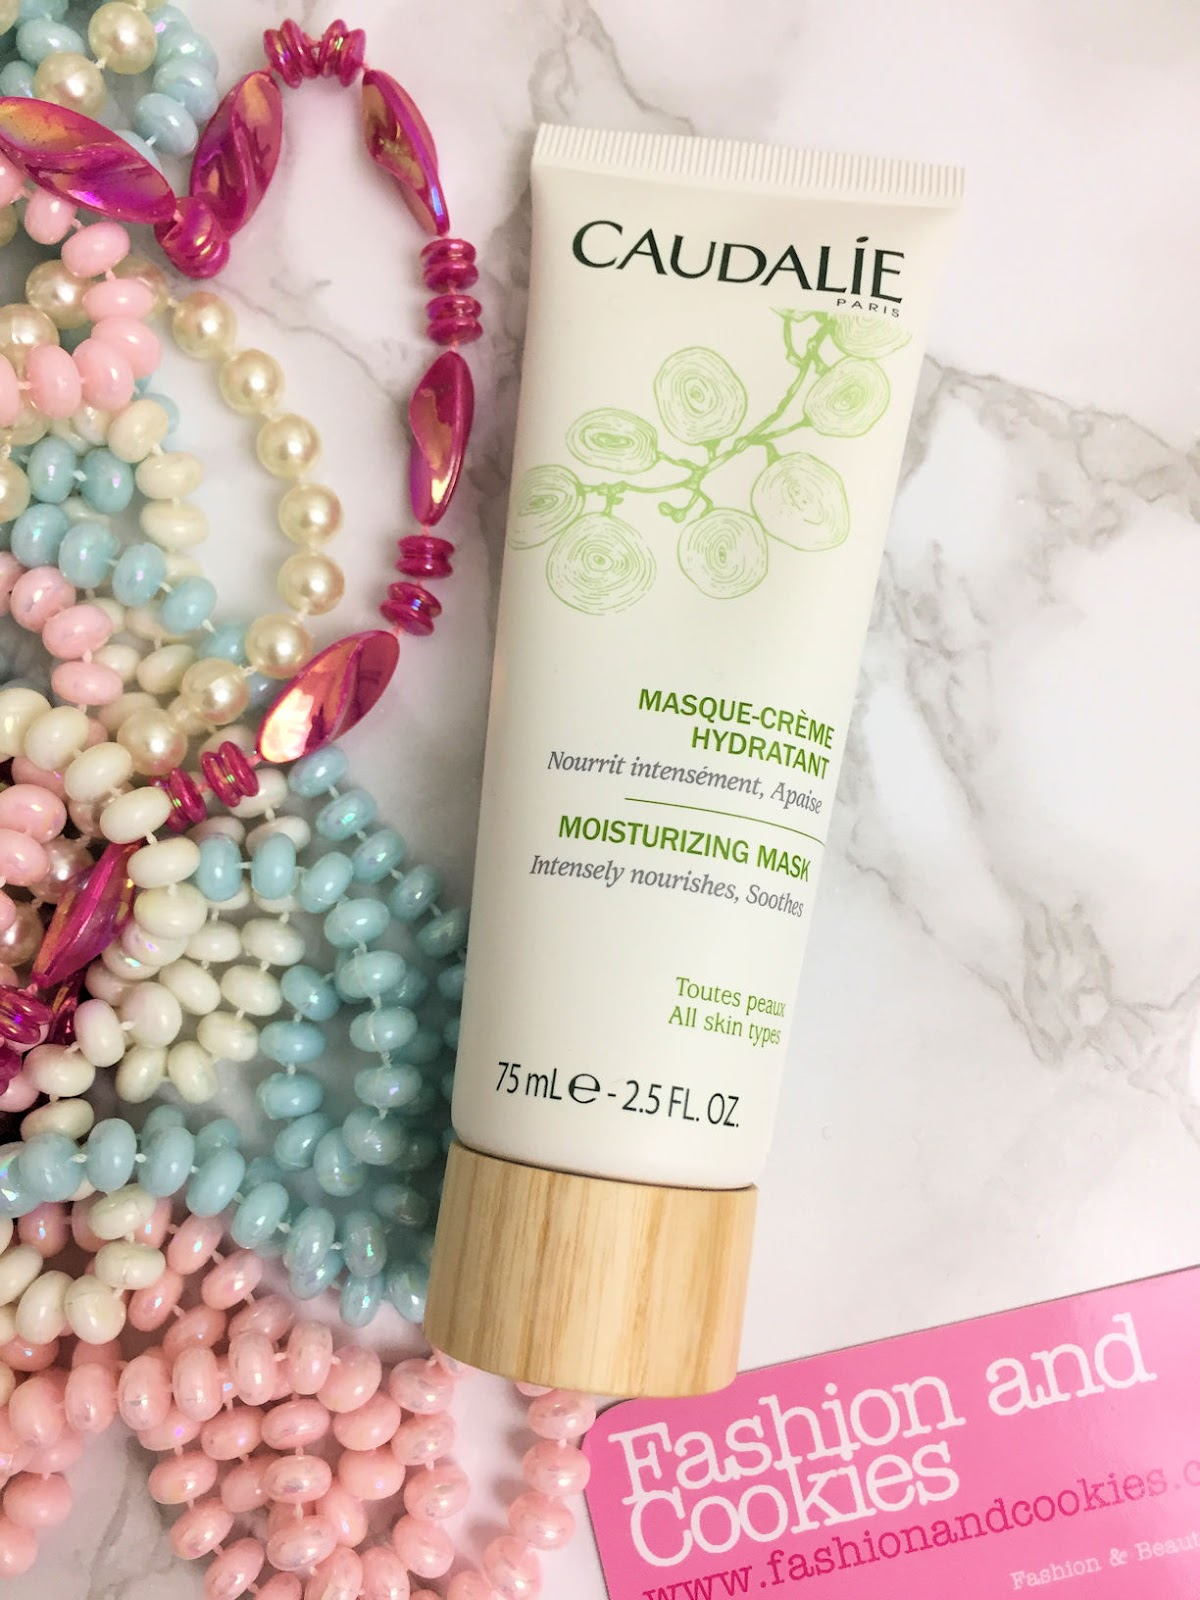 Masque-creme hydratante Caudalie su Fashion and Cookies beauty blog, beauty blogger